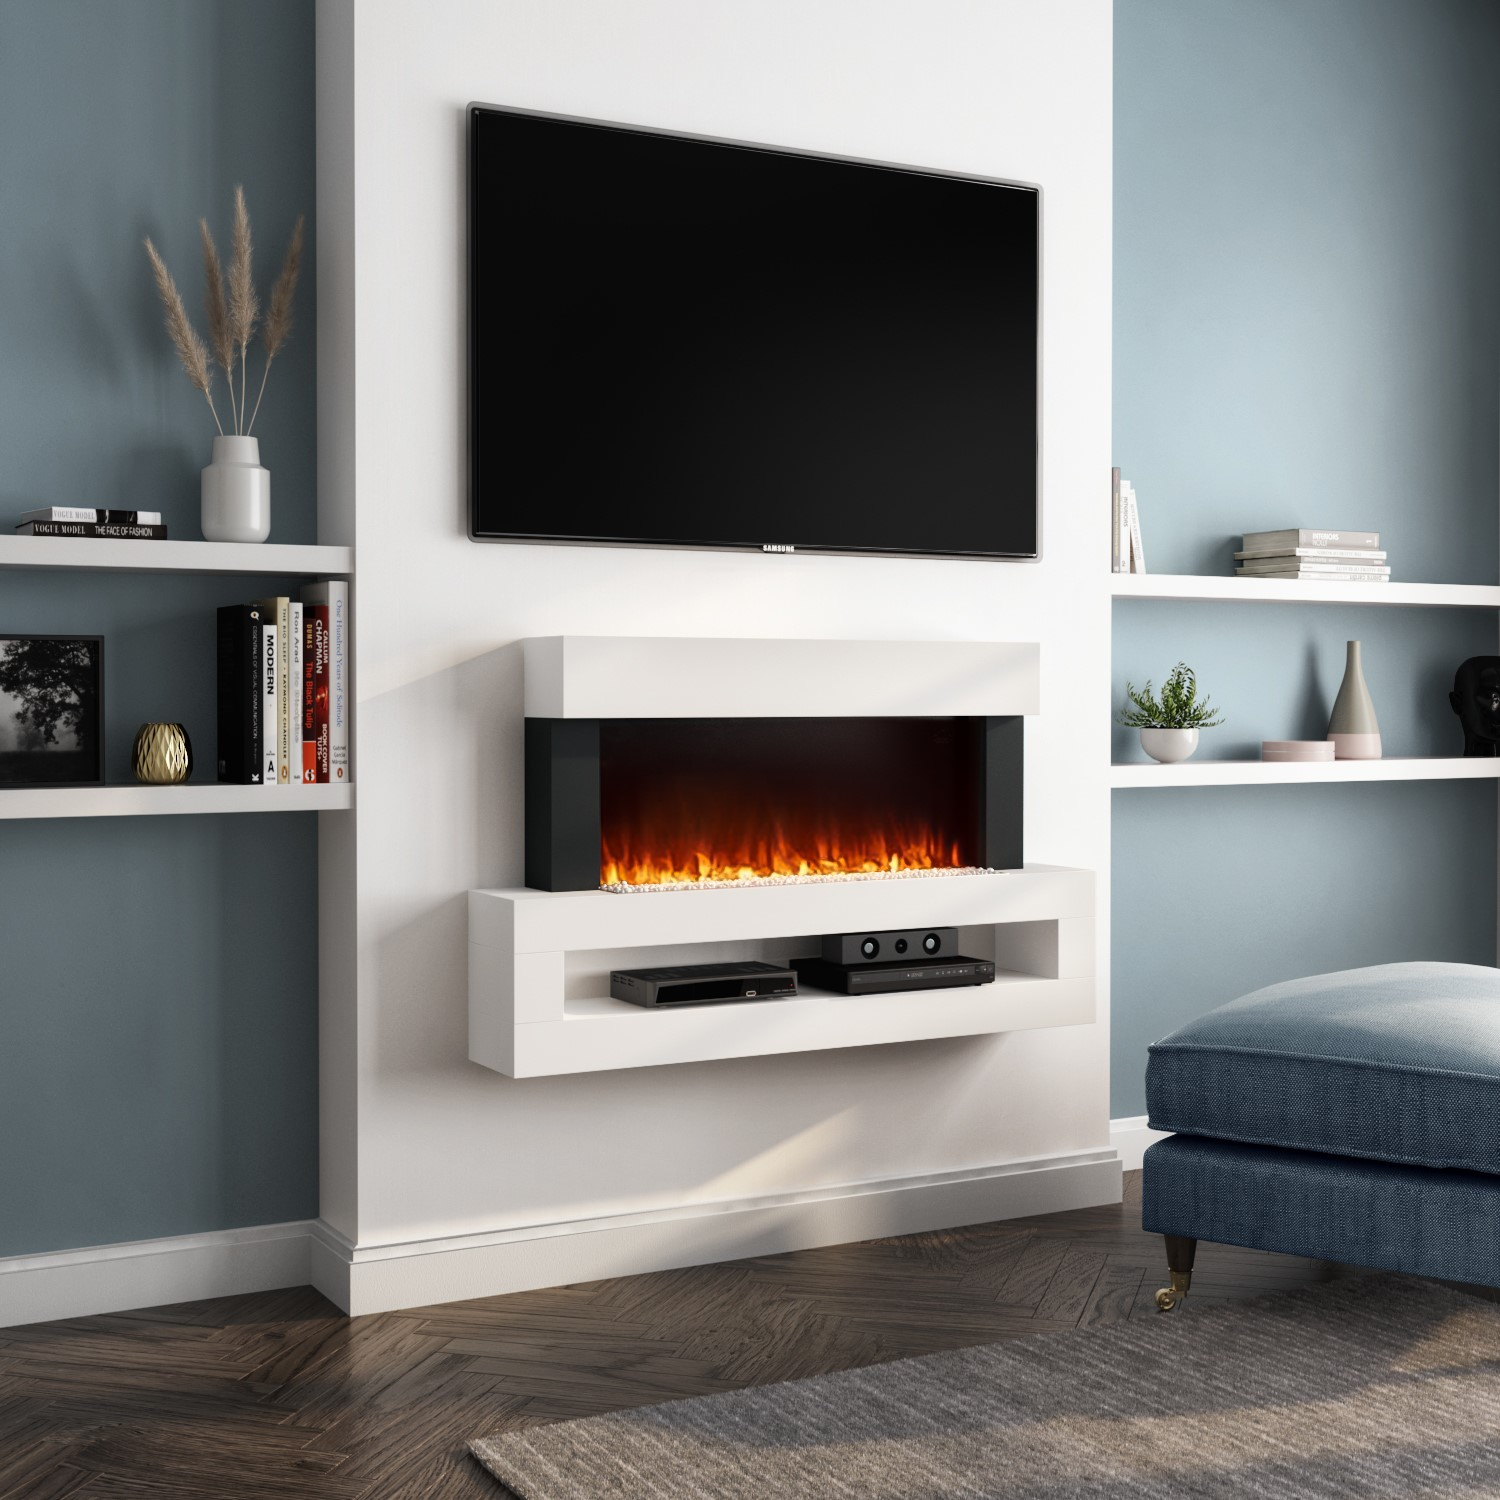 Amberglo White Wall Mounted Electric Fireplace Suite With Led Shelf Furniture123